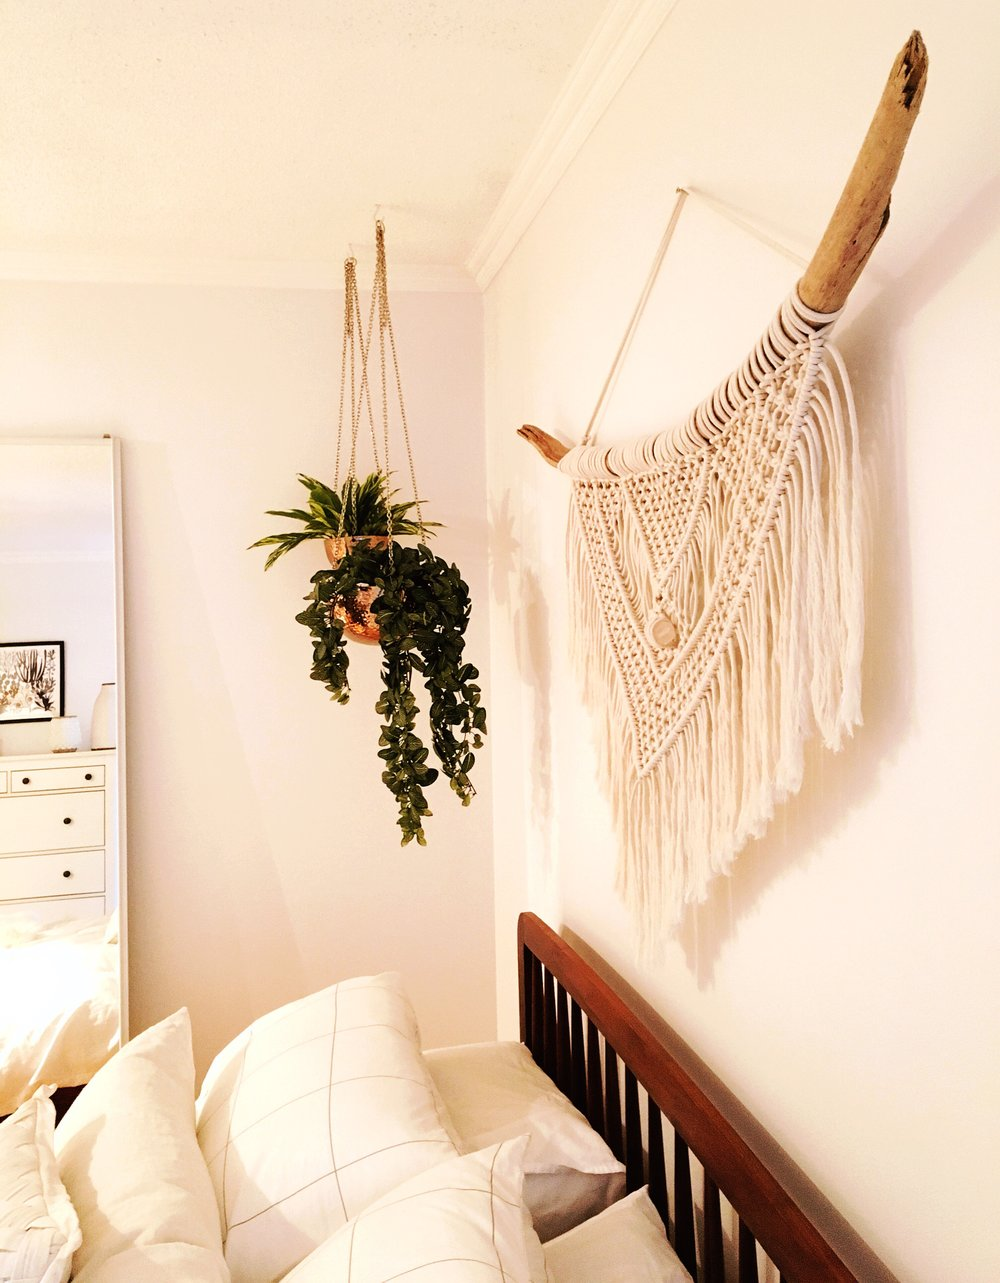 THE FUNKY FRESH / BOHO DREAMS MACRAME